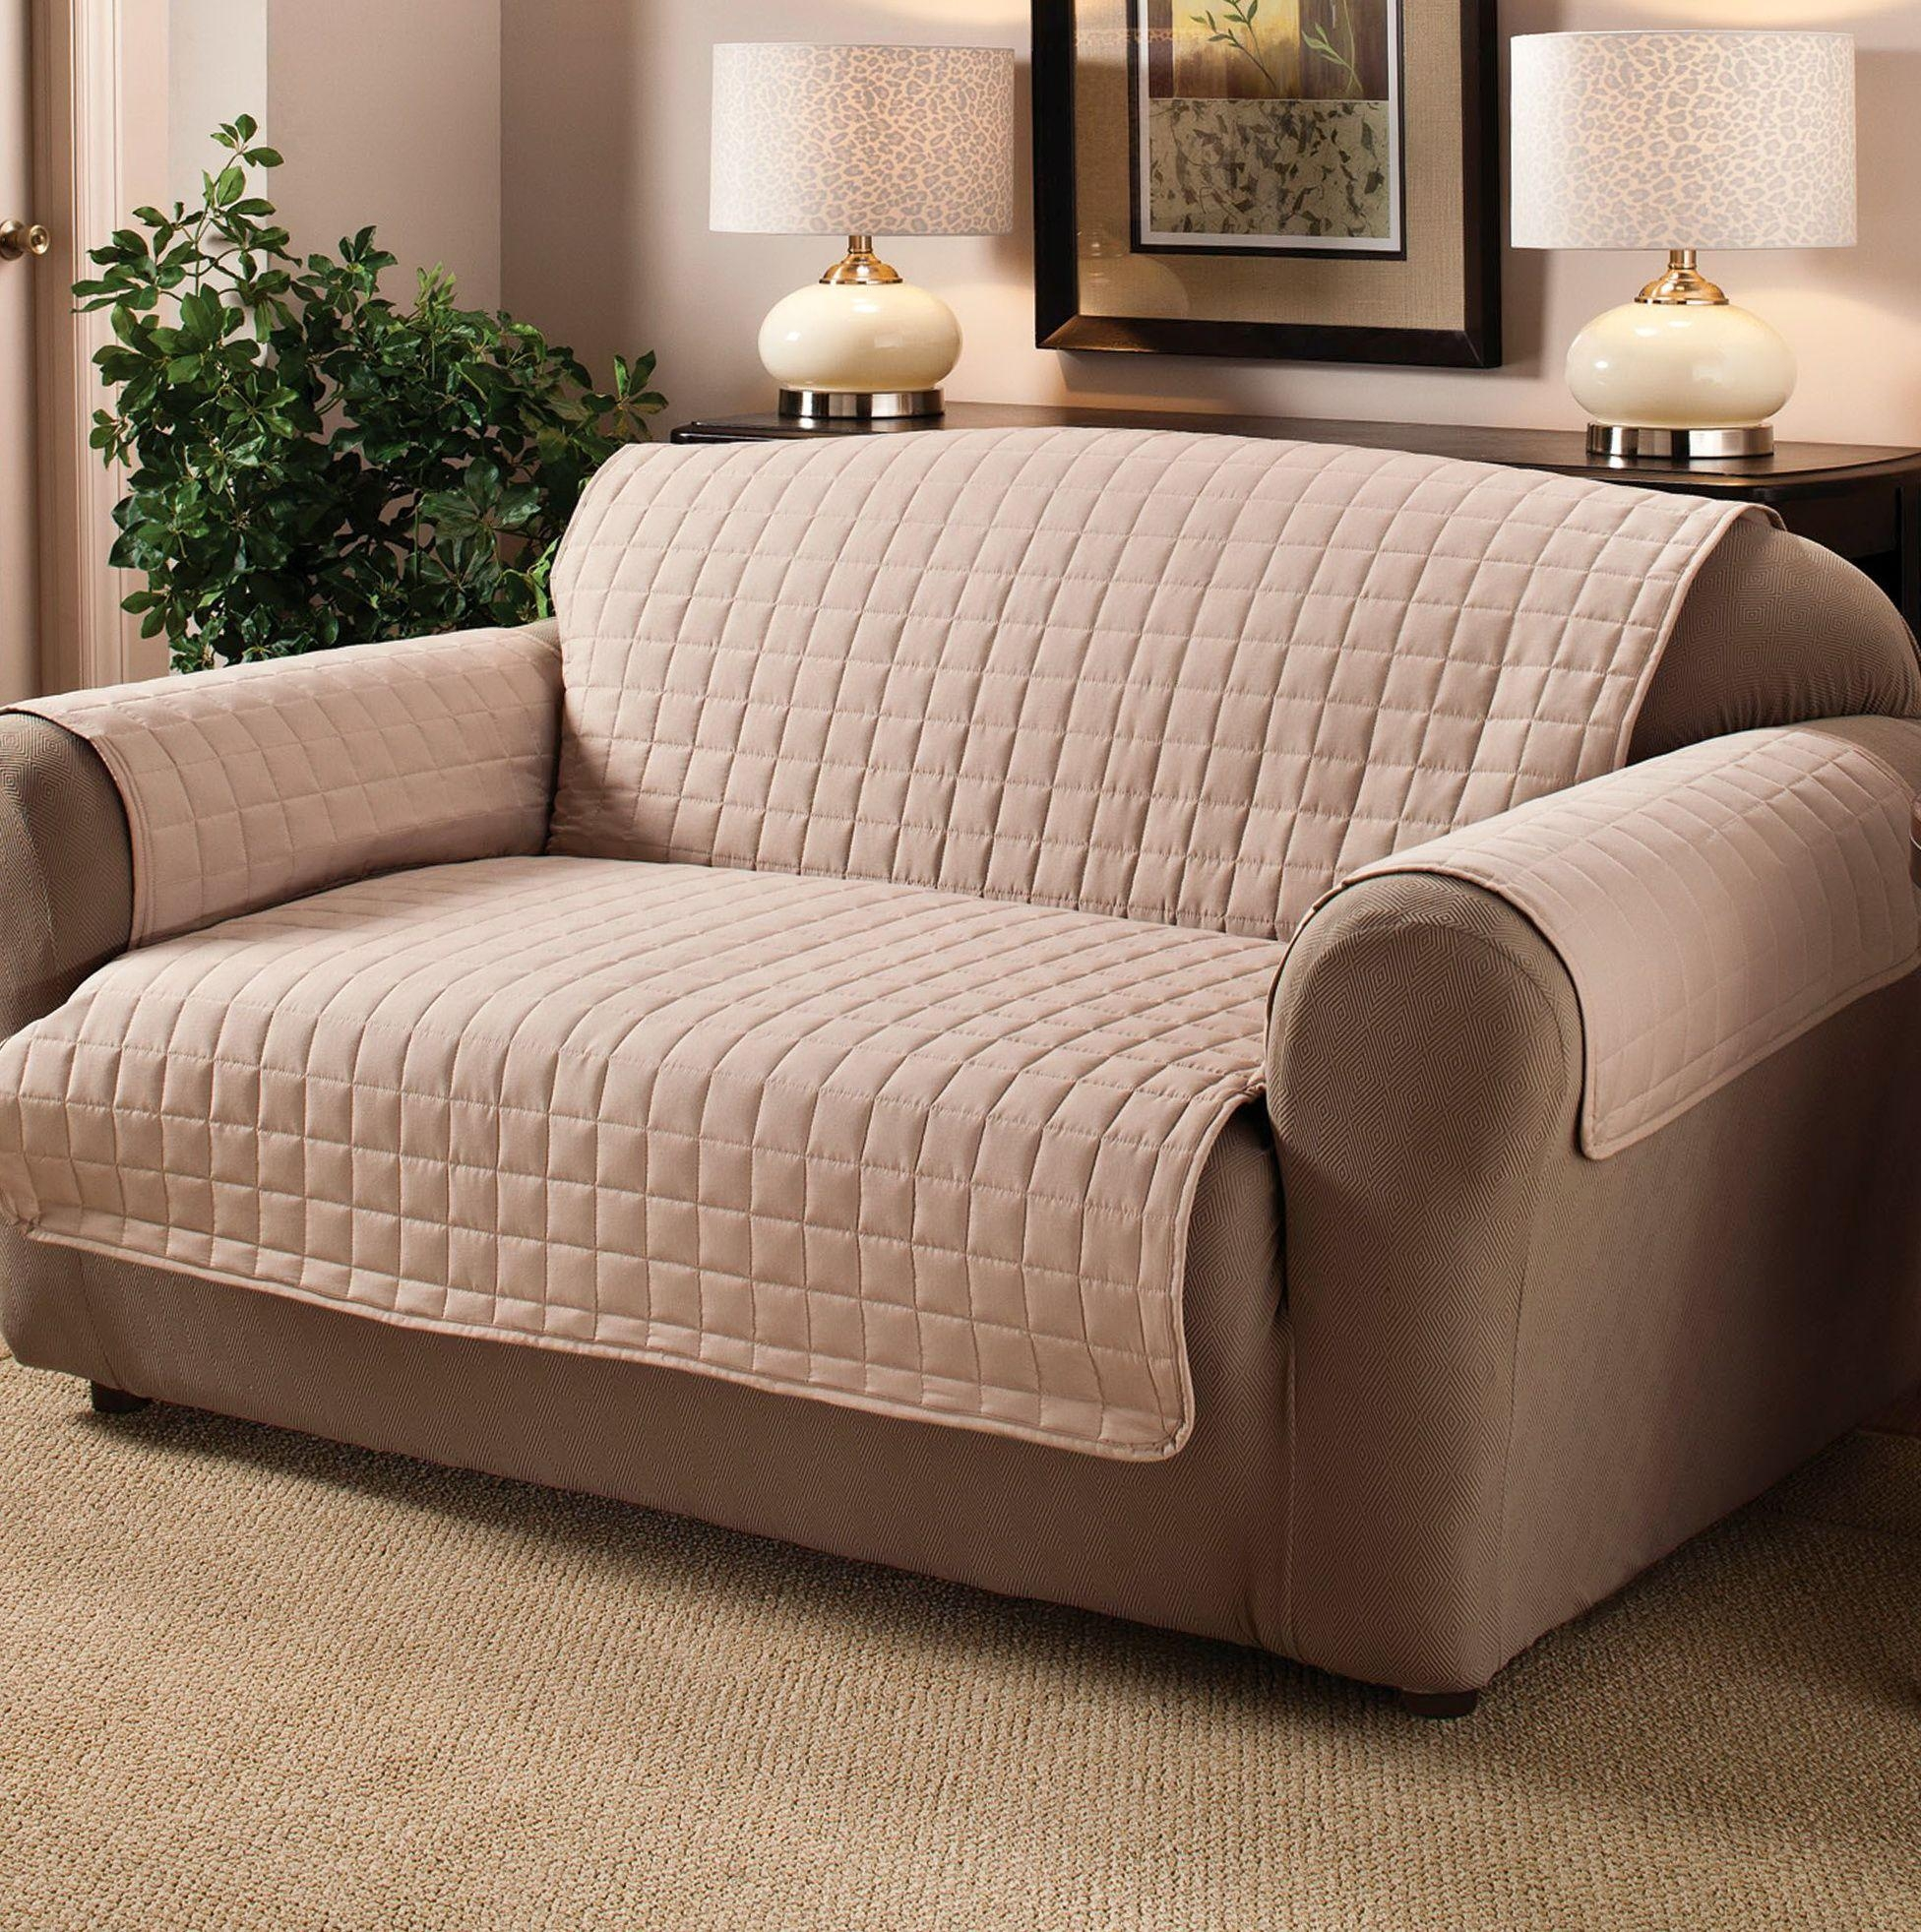 Furniture: Wonderful Walmart Couch Covers Design For Alluring Pertaining To Suede Slipcovers For Sofas (View 13 of 20)